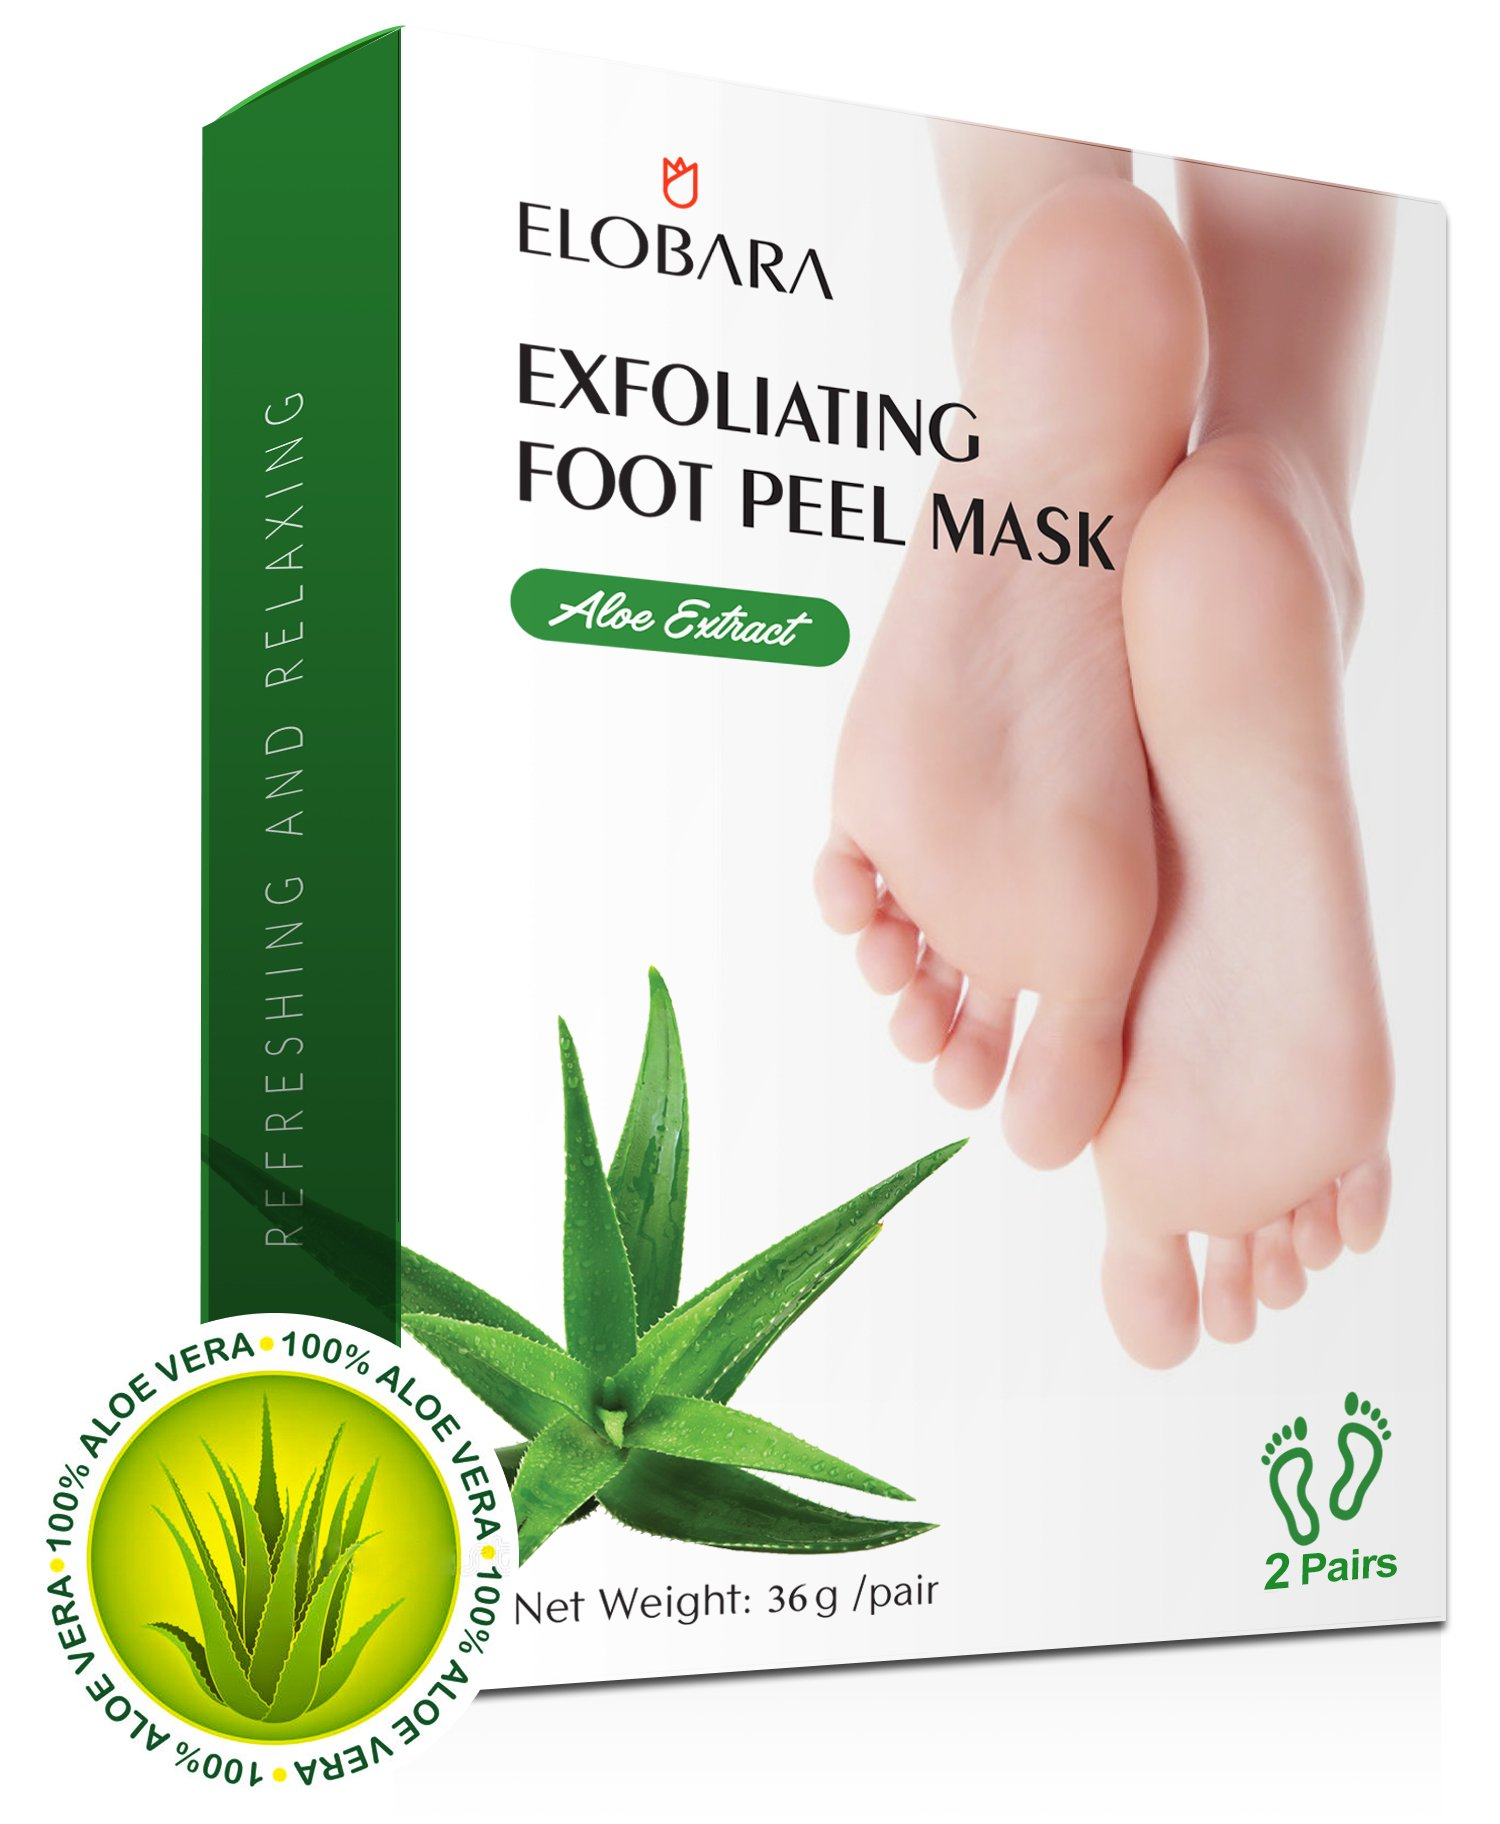 Exfoliating Foot Peel Mask, 2 Pairs, Elobara Foot Peeling Mask Remove Callus and Dead Skin, Baby Your Feet Soft and Smooth